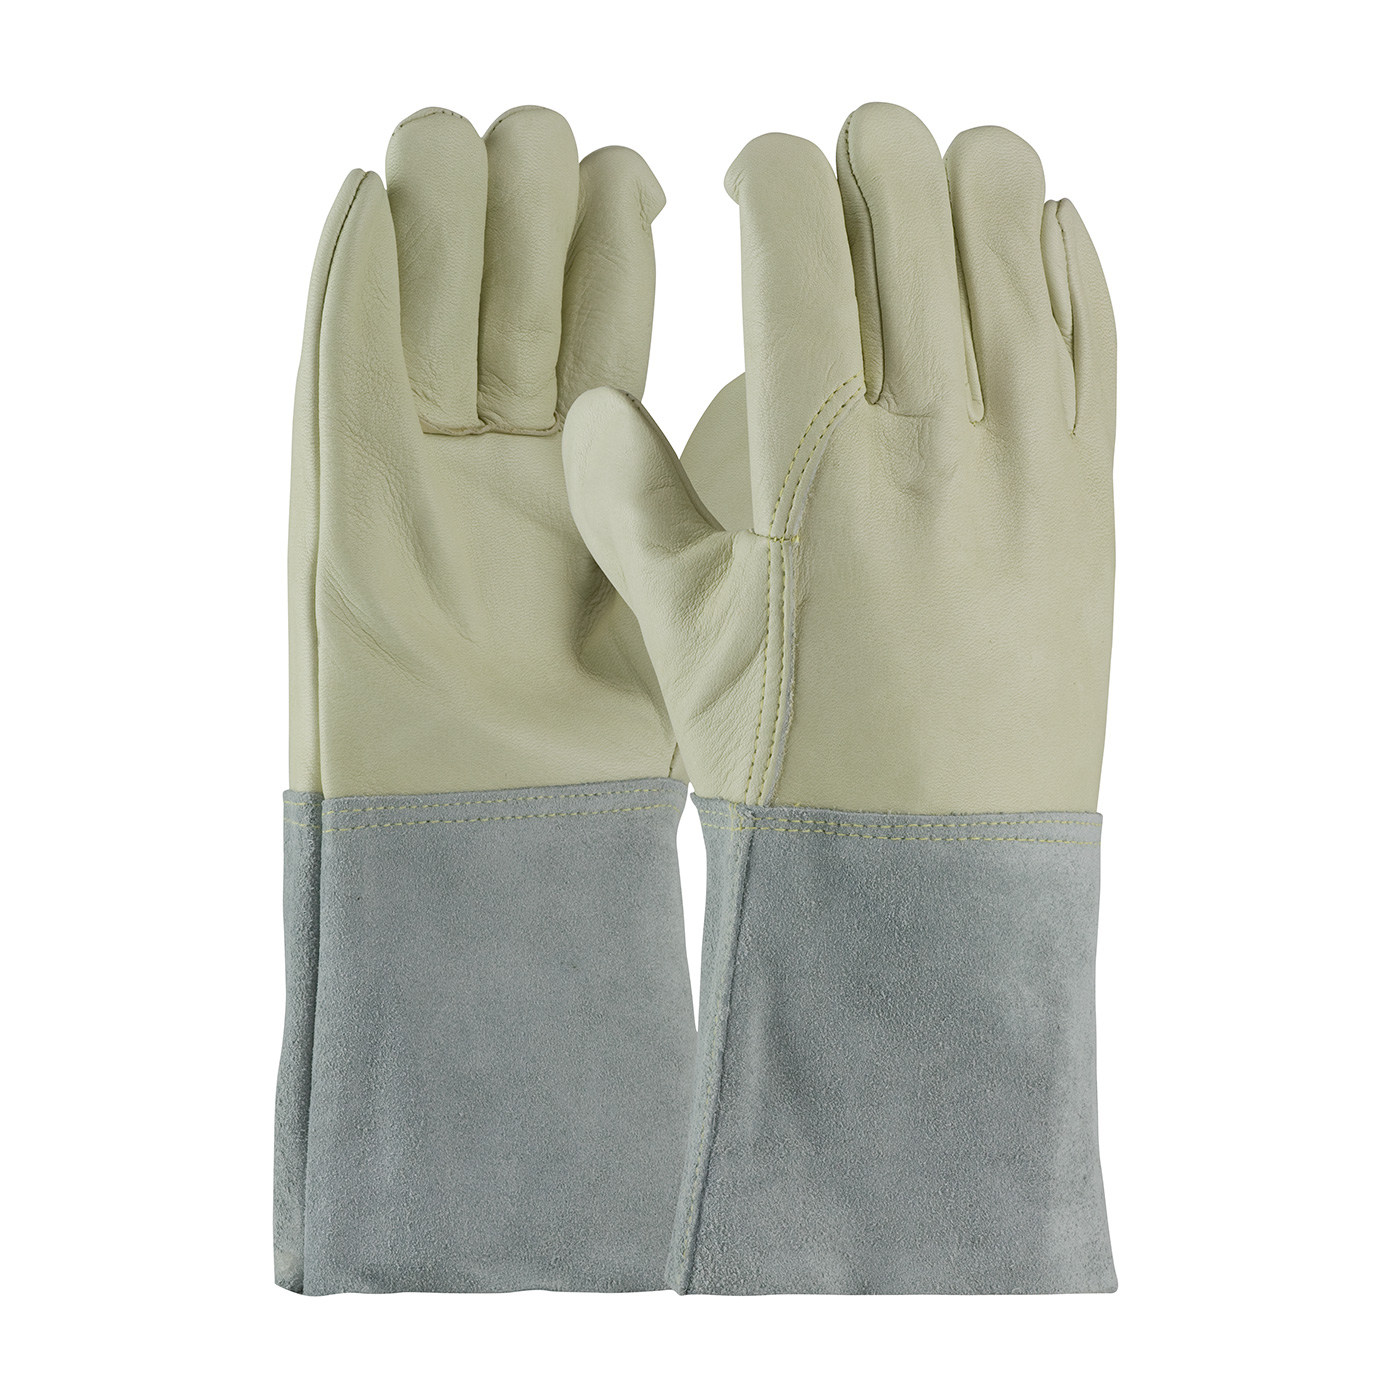 #75-2022 PIP® Top Grain  Cowhide Leather Mig Tig Welder's Gloves with Leather Band Top and Kevlar® Stitching